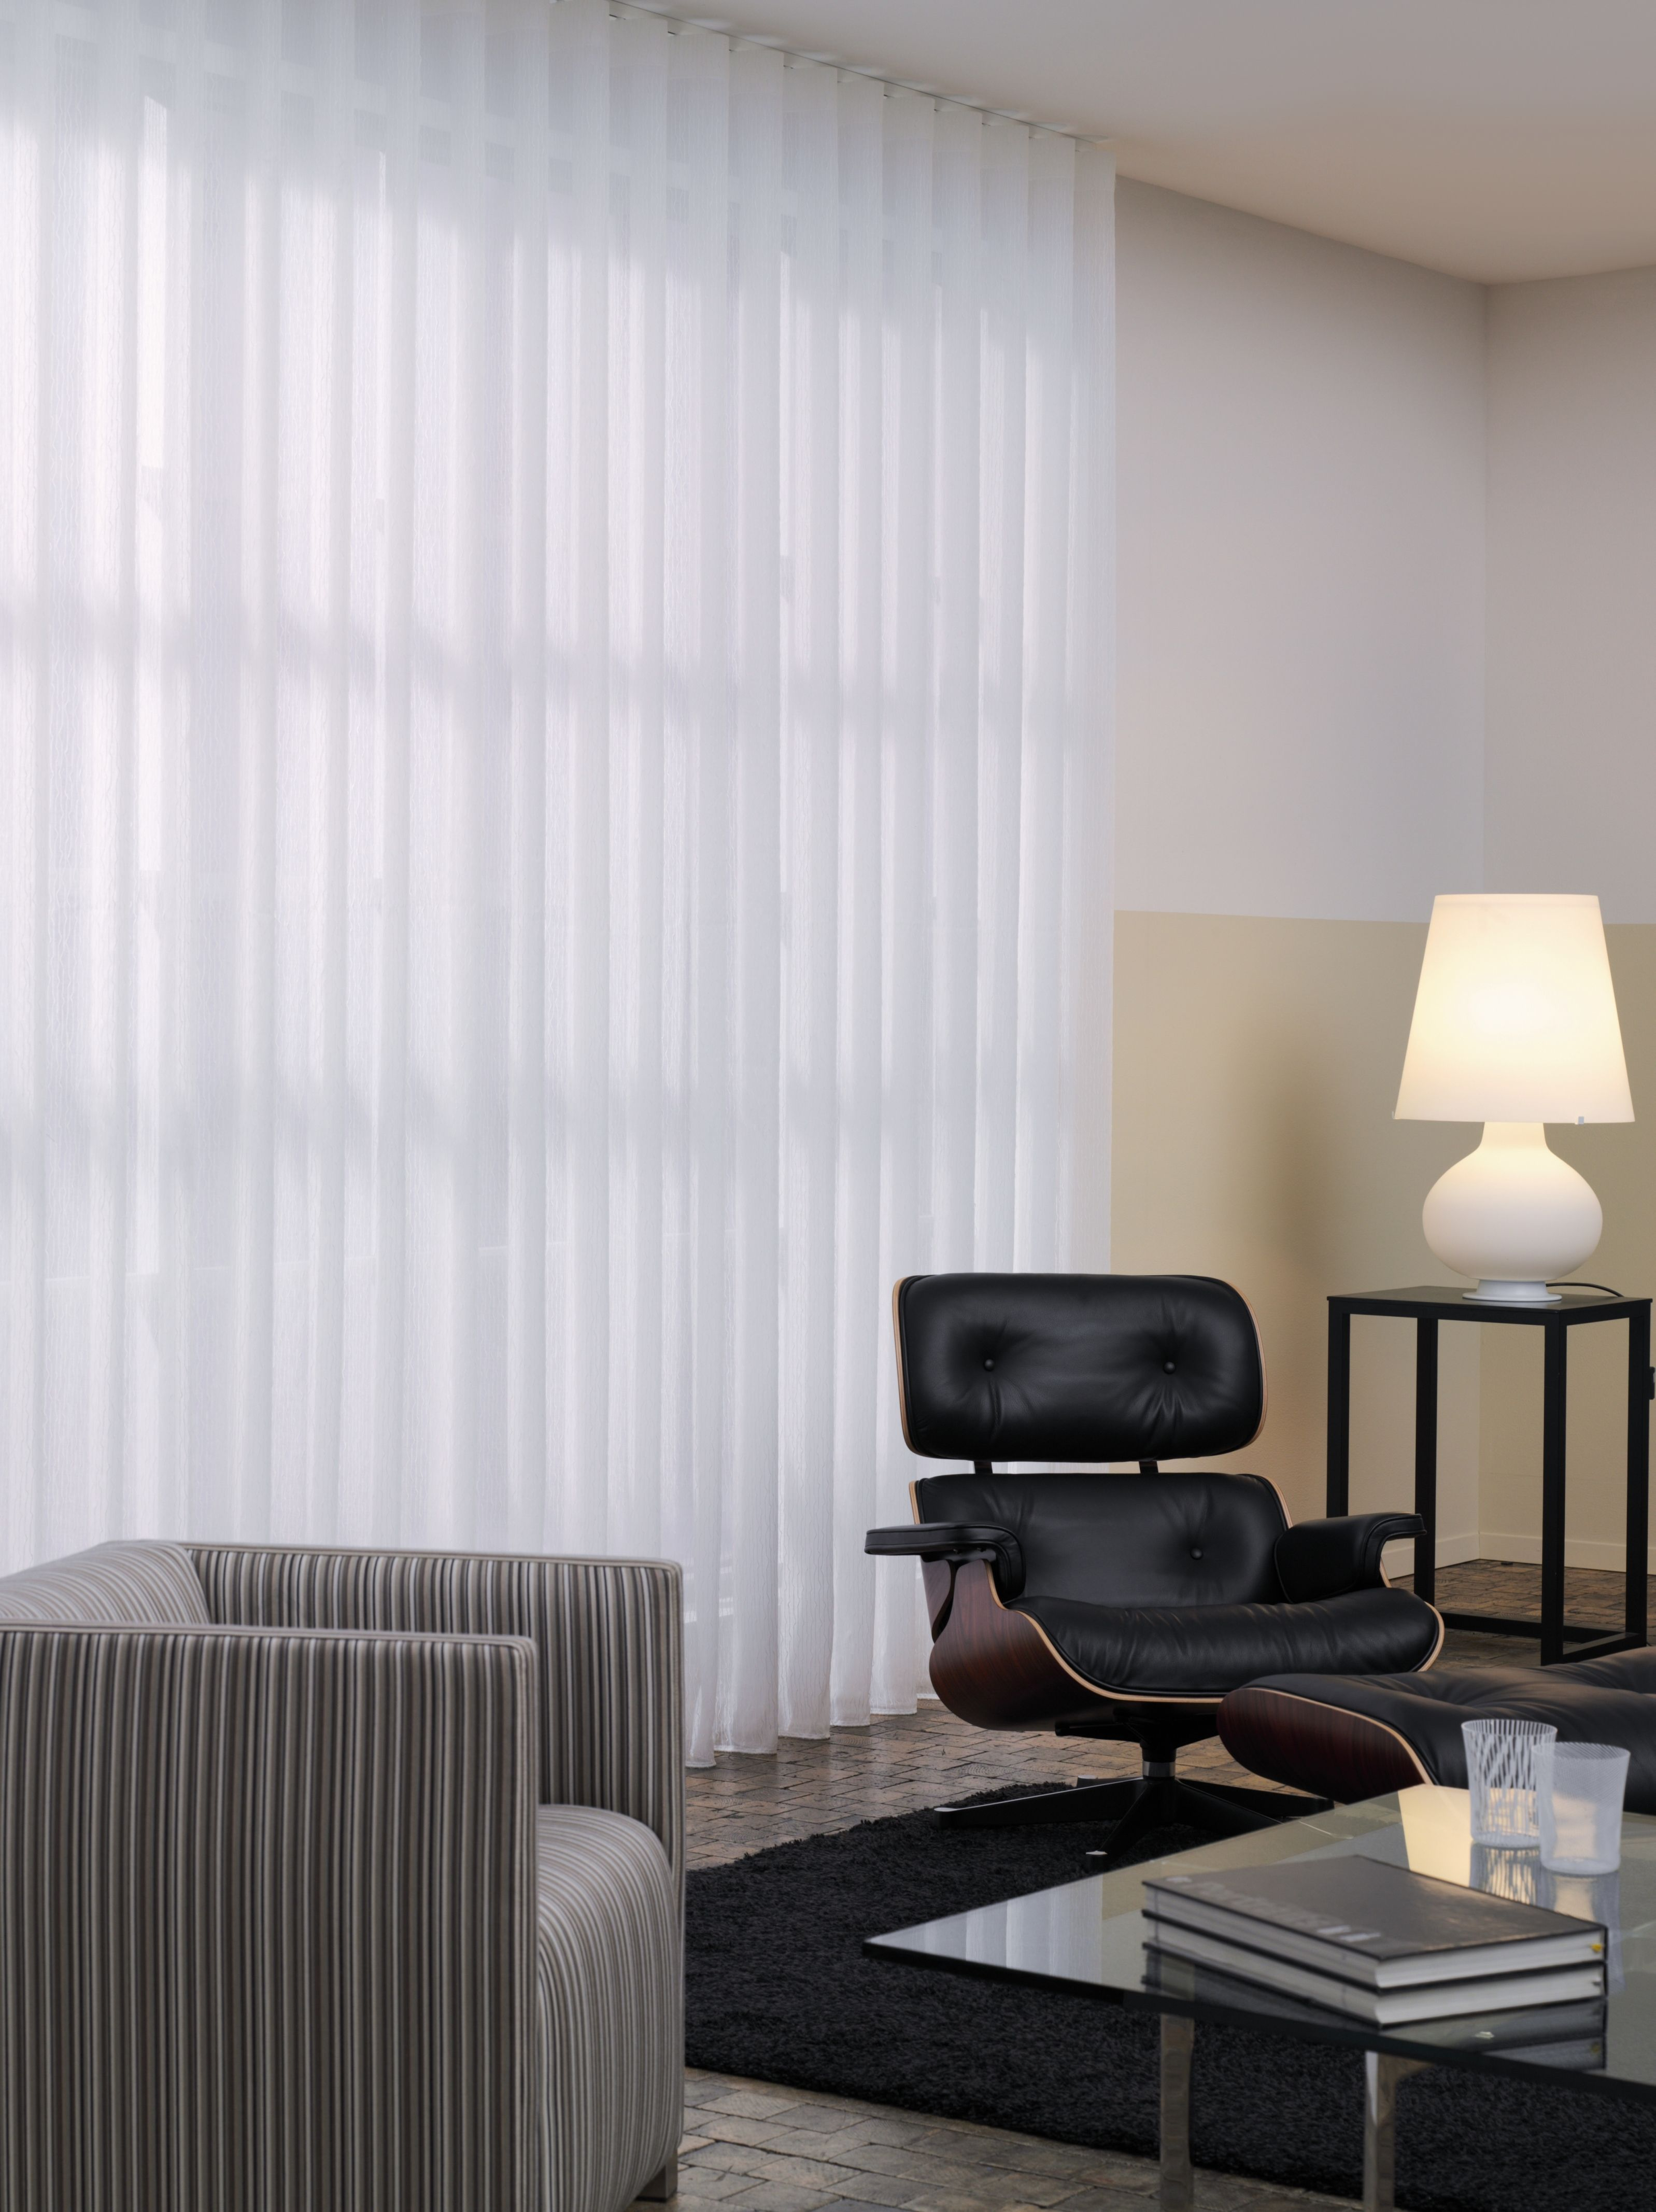 curtain track curtains tracks home x mounted window on bay furniture ceiling